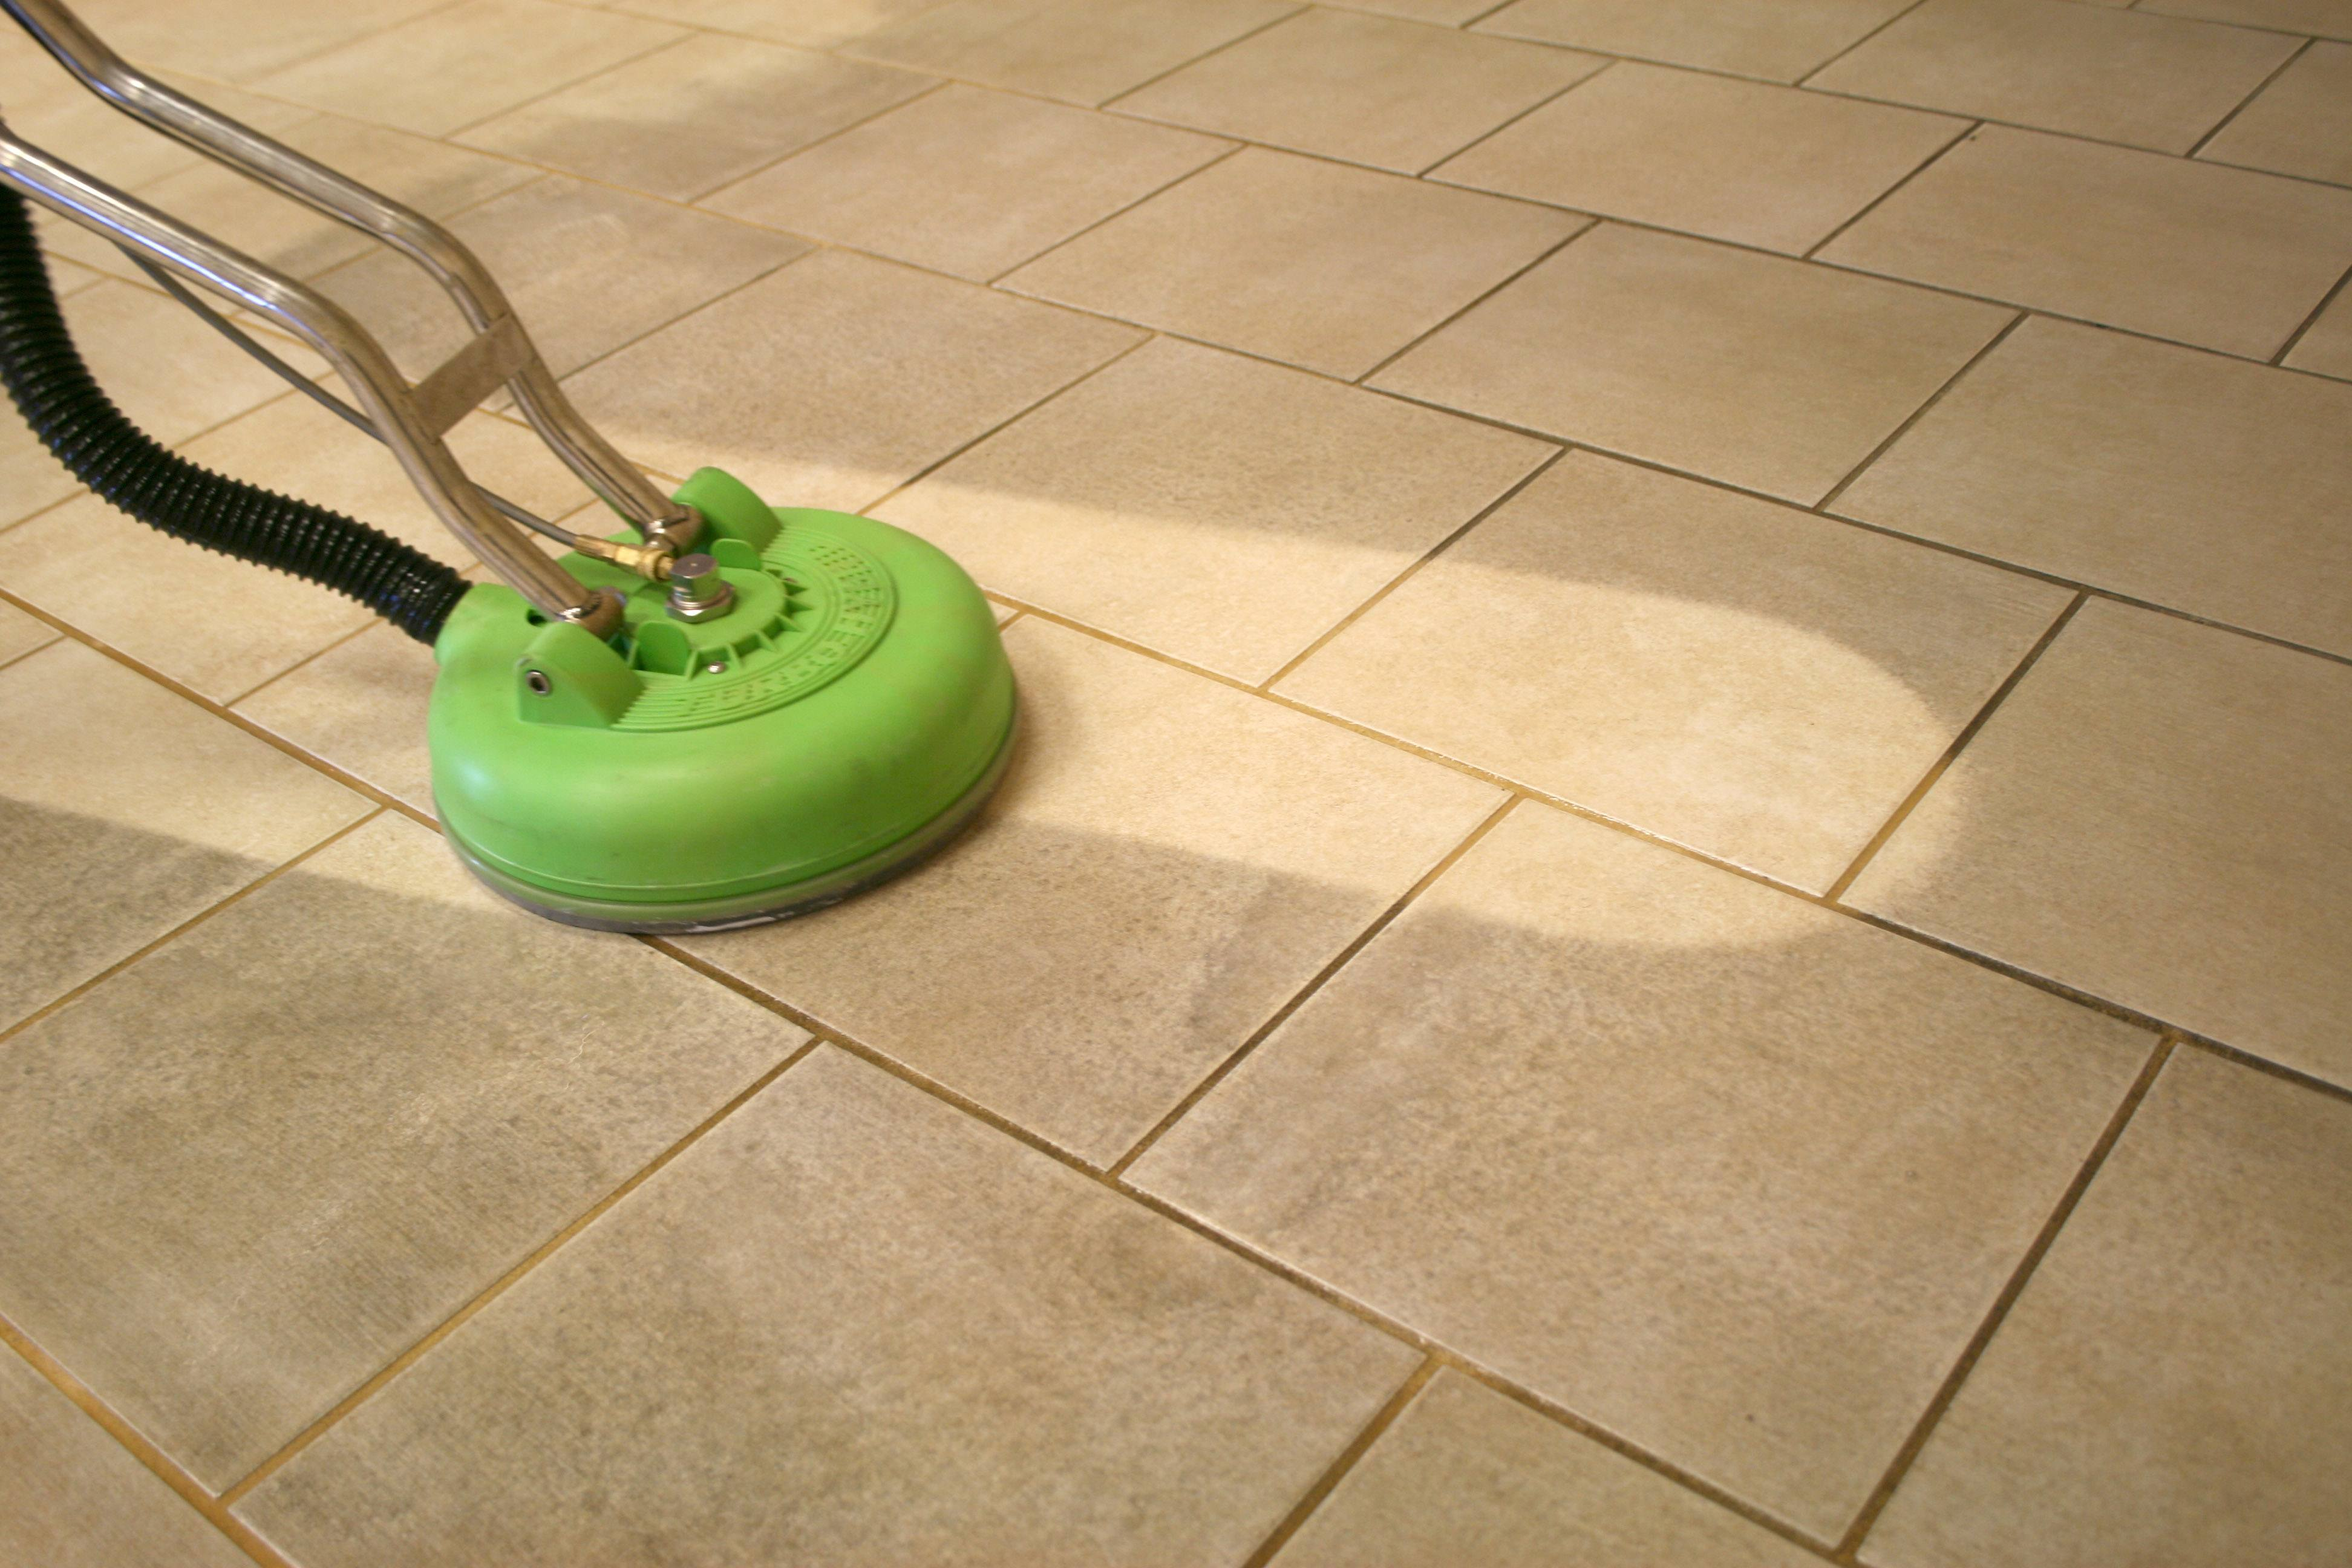 Best thing to clean floor tile grout tile grout cleaning secure carpet cleaning dailygadgetfo Images